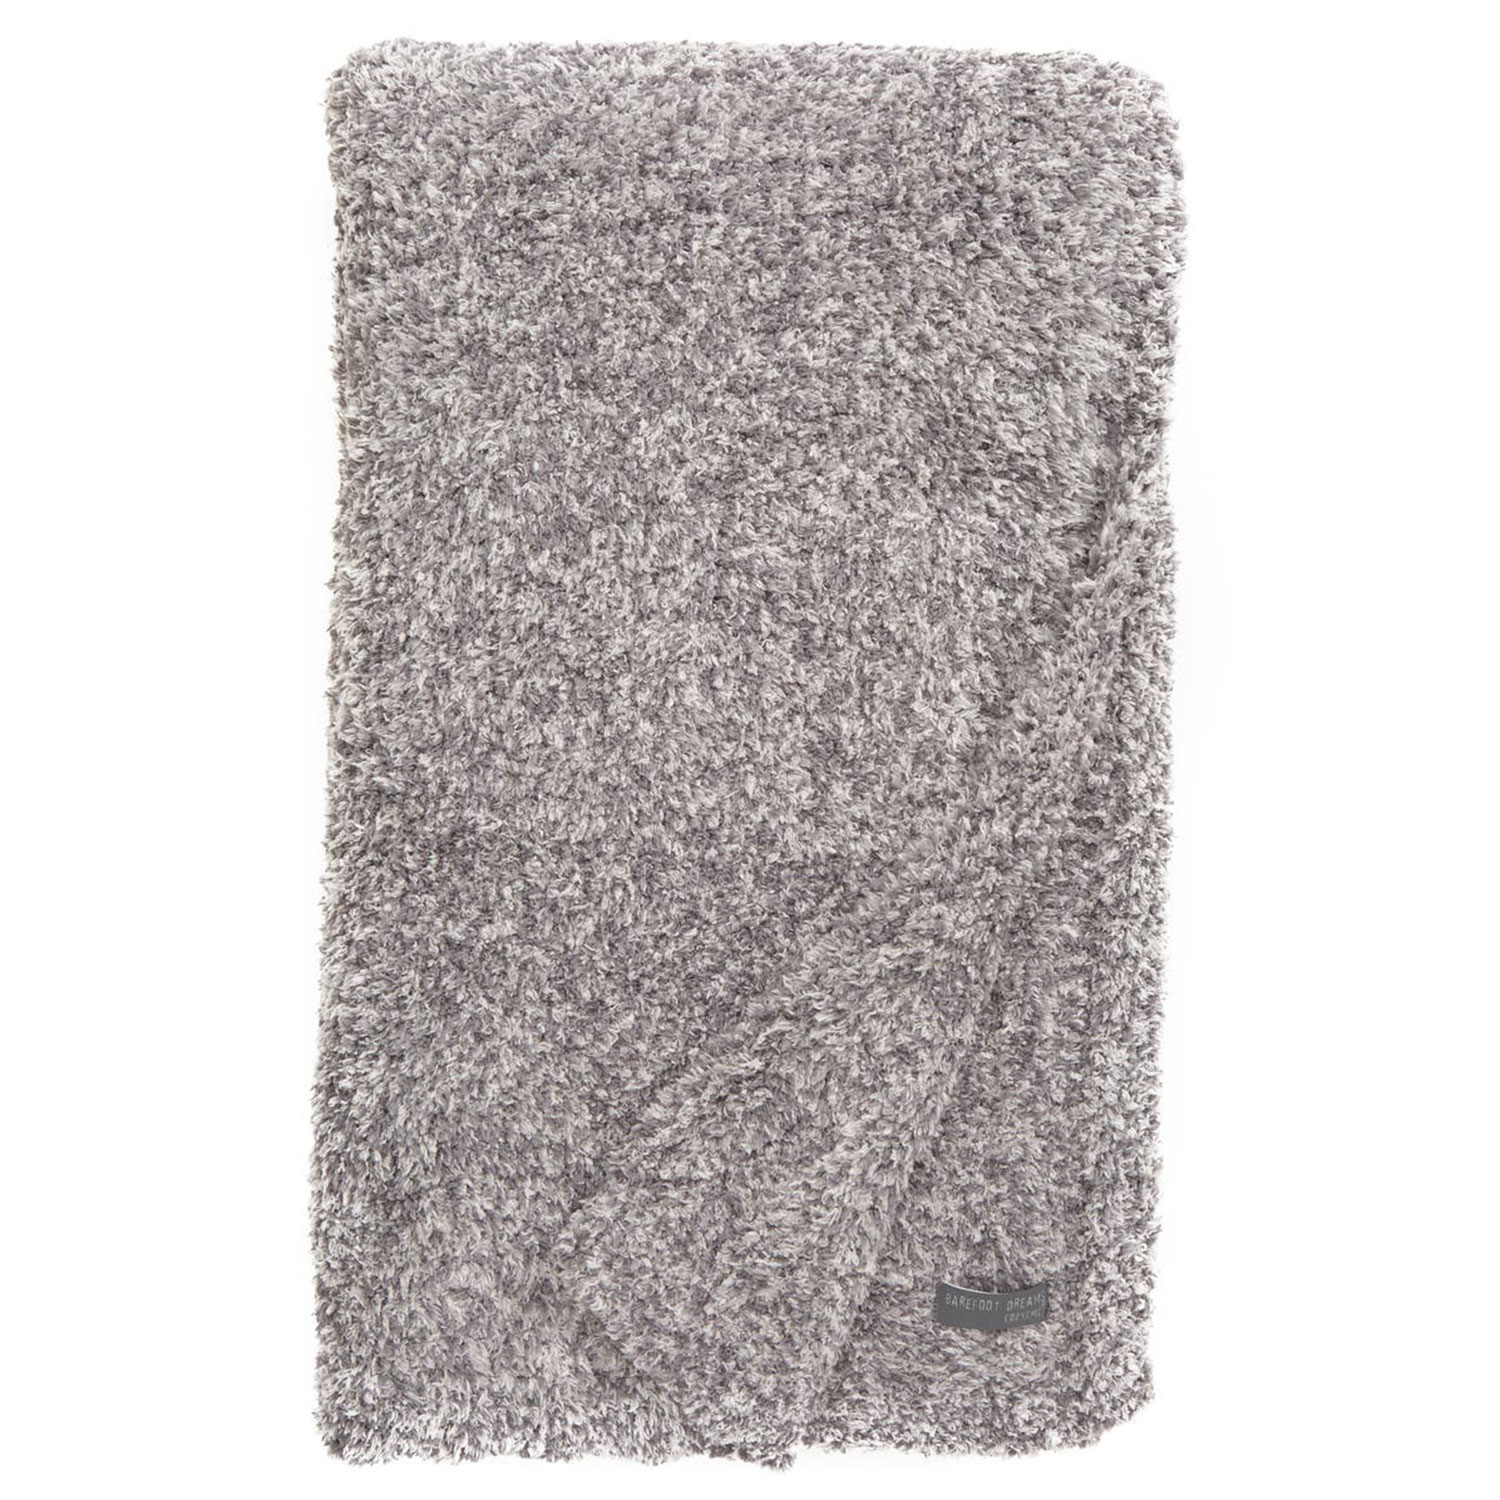 Barefoot Dreams Cozy-Chic Heathered Throw Blanket